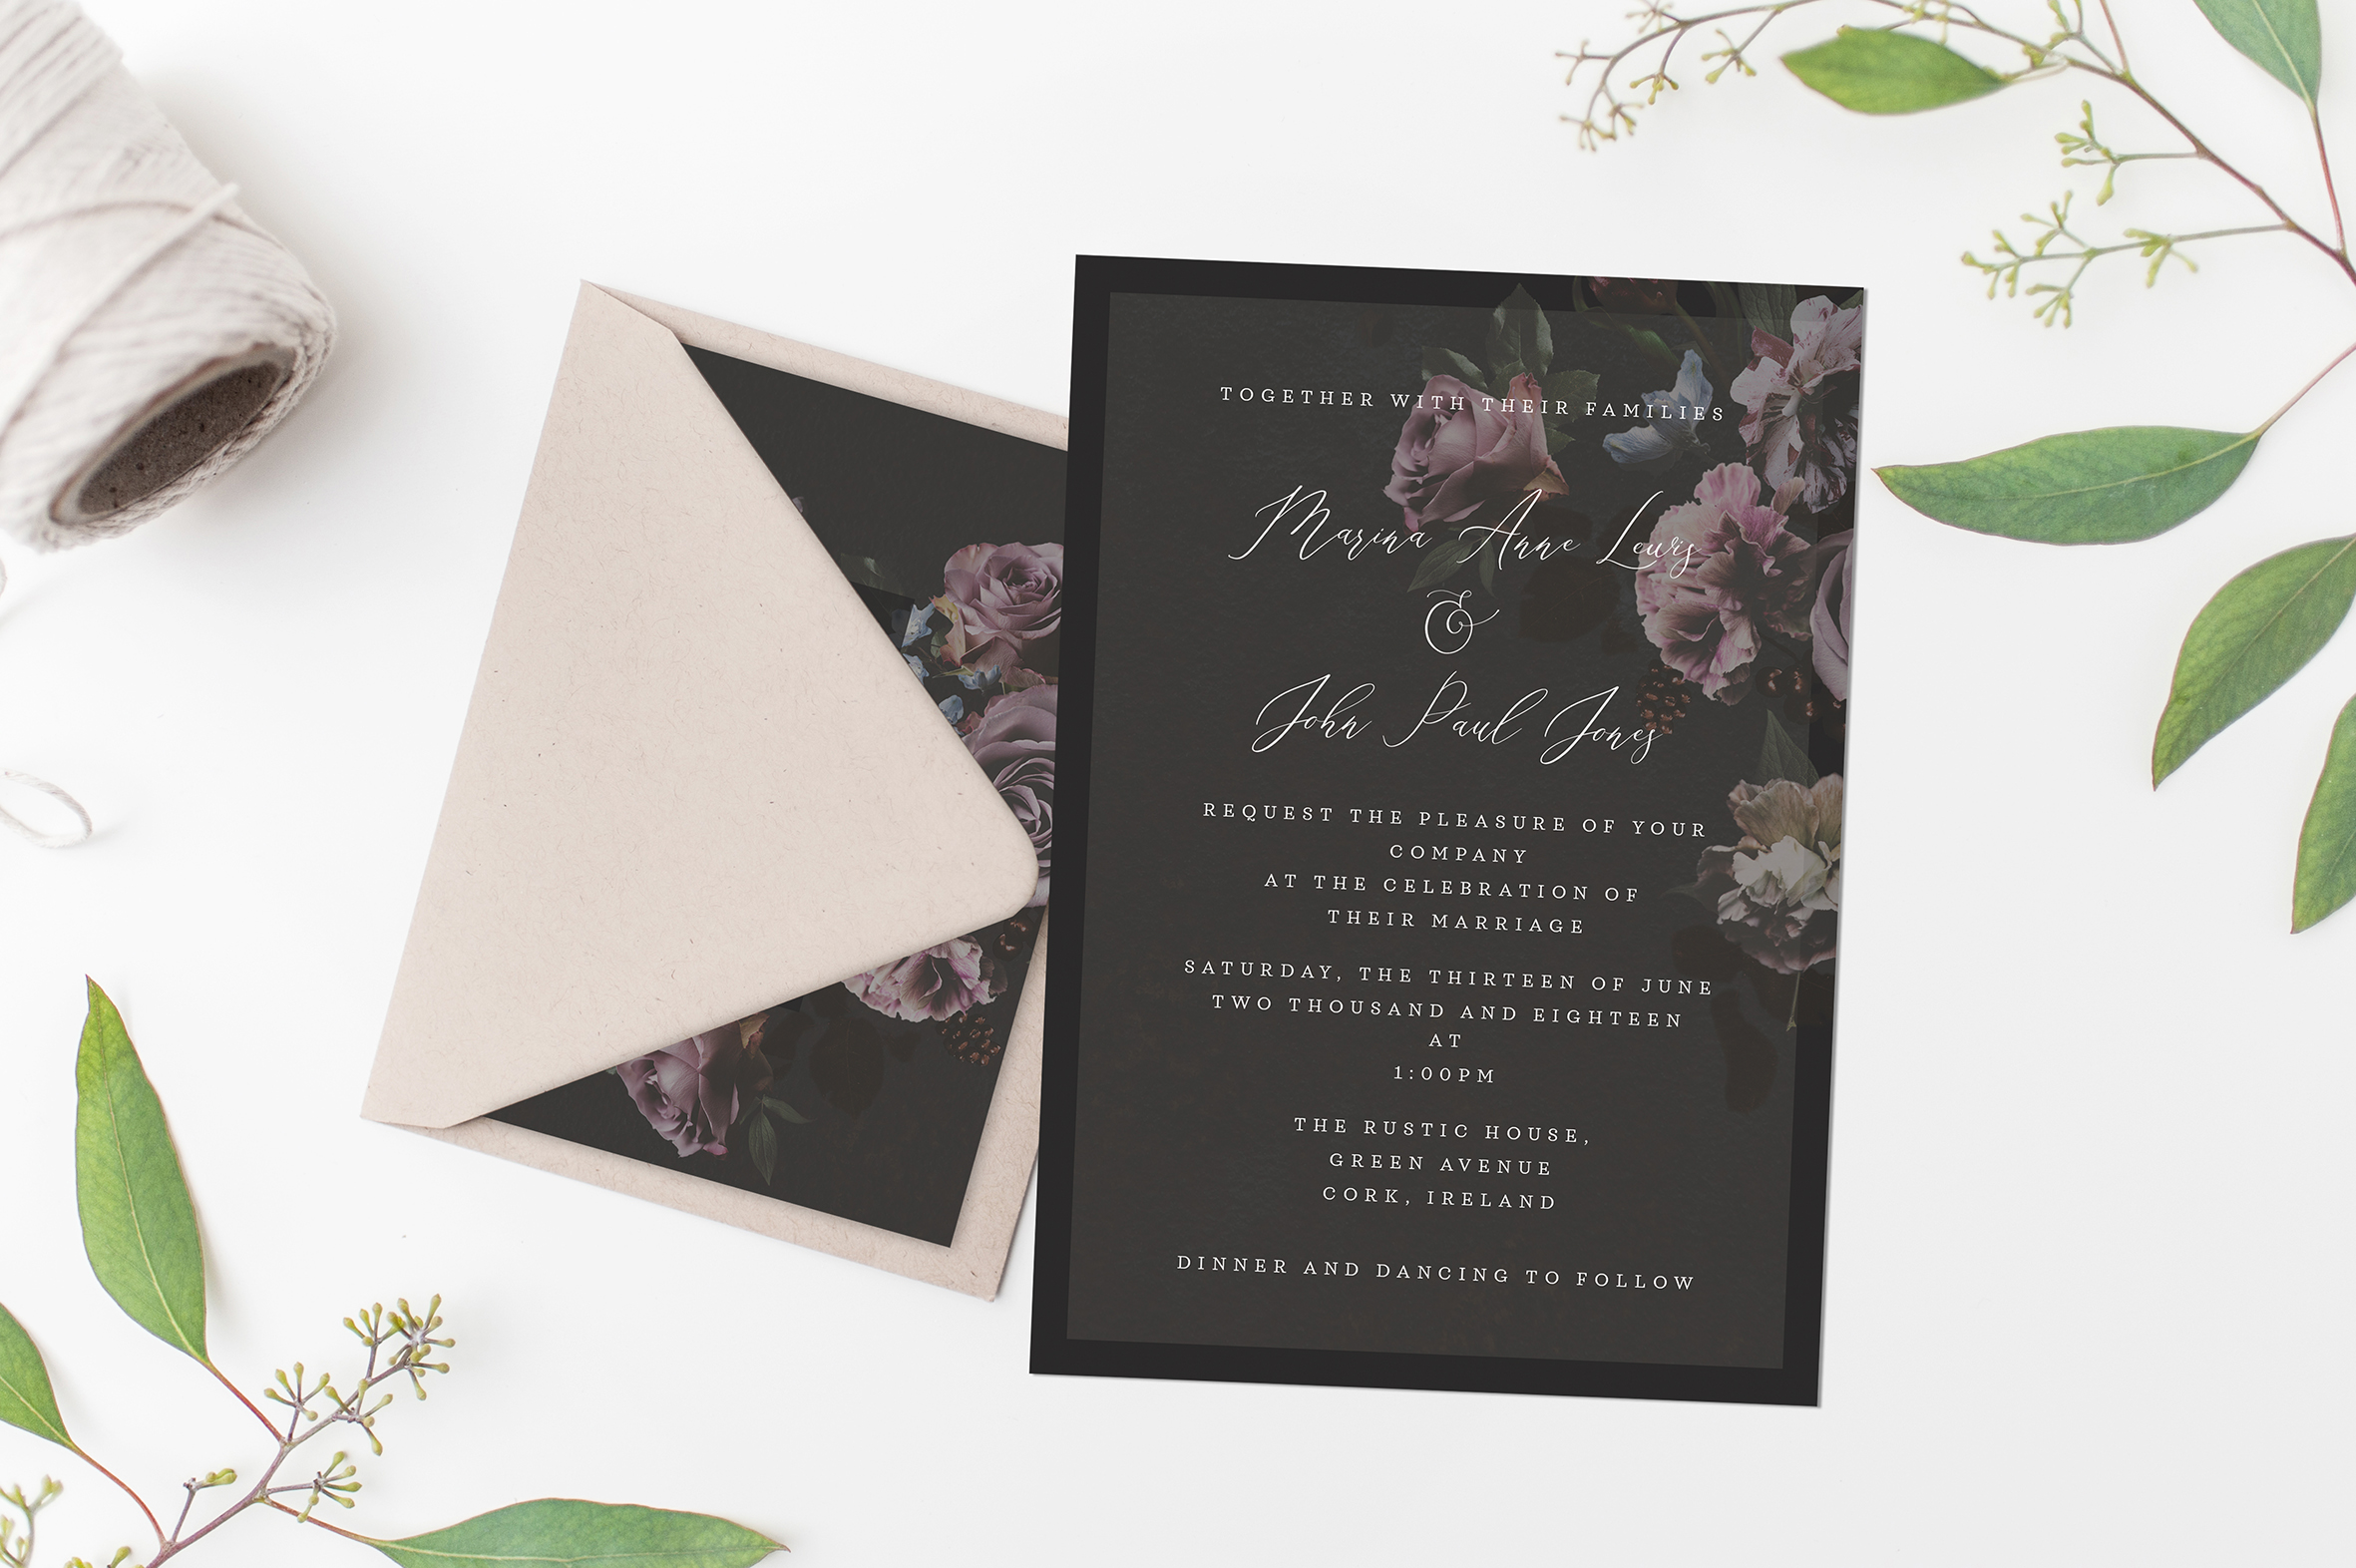 preview of the dark theme wedding stationery black beautiful wedding invitations floral style elegant contemporary invitations cork ireland